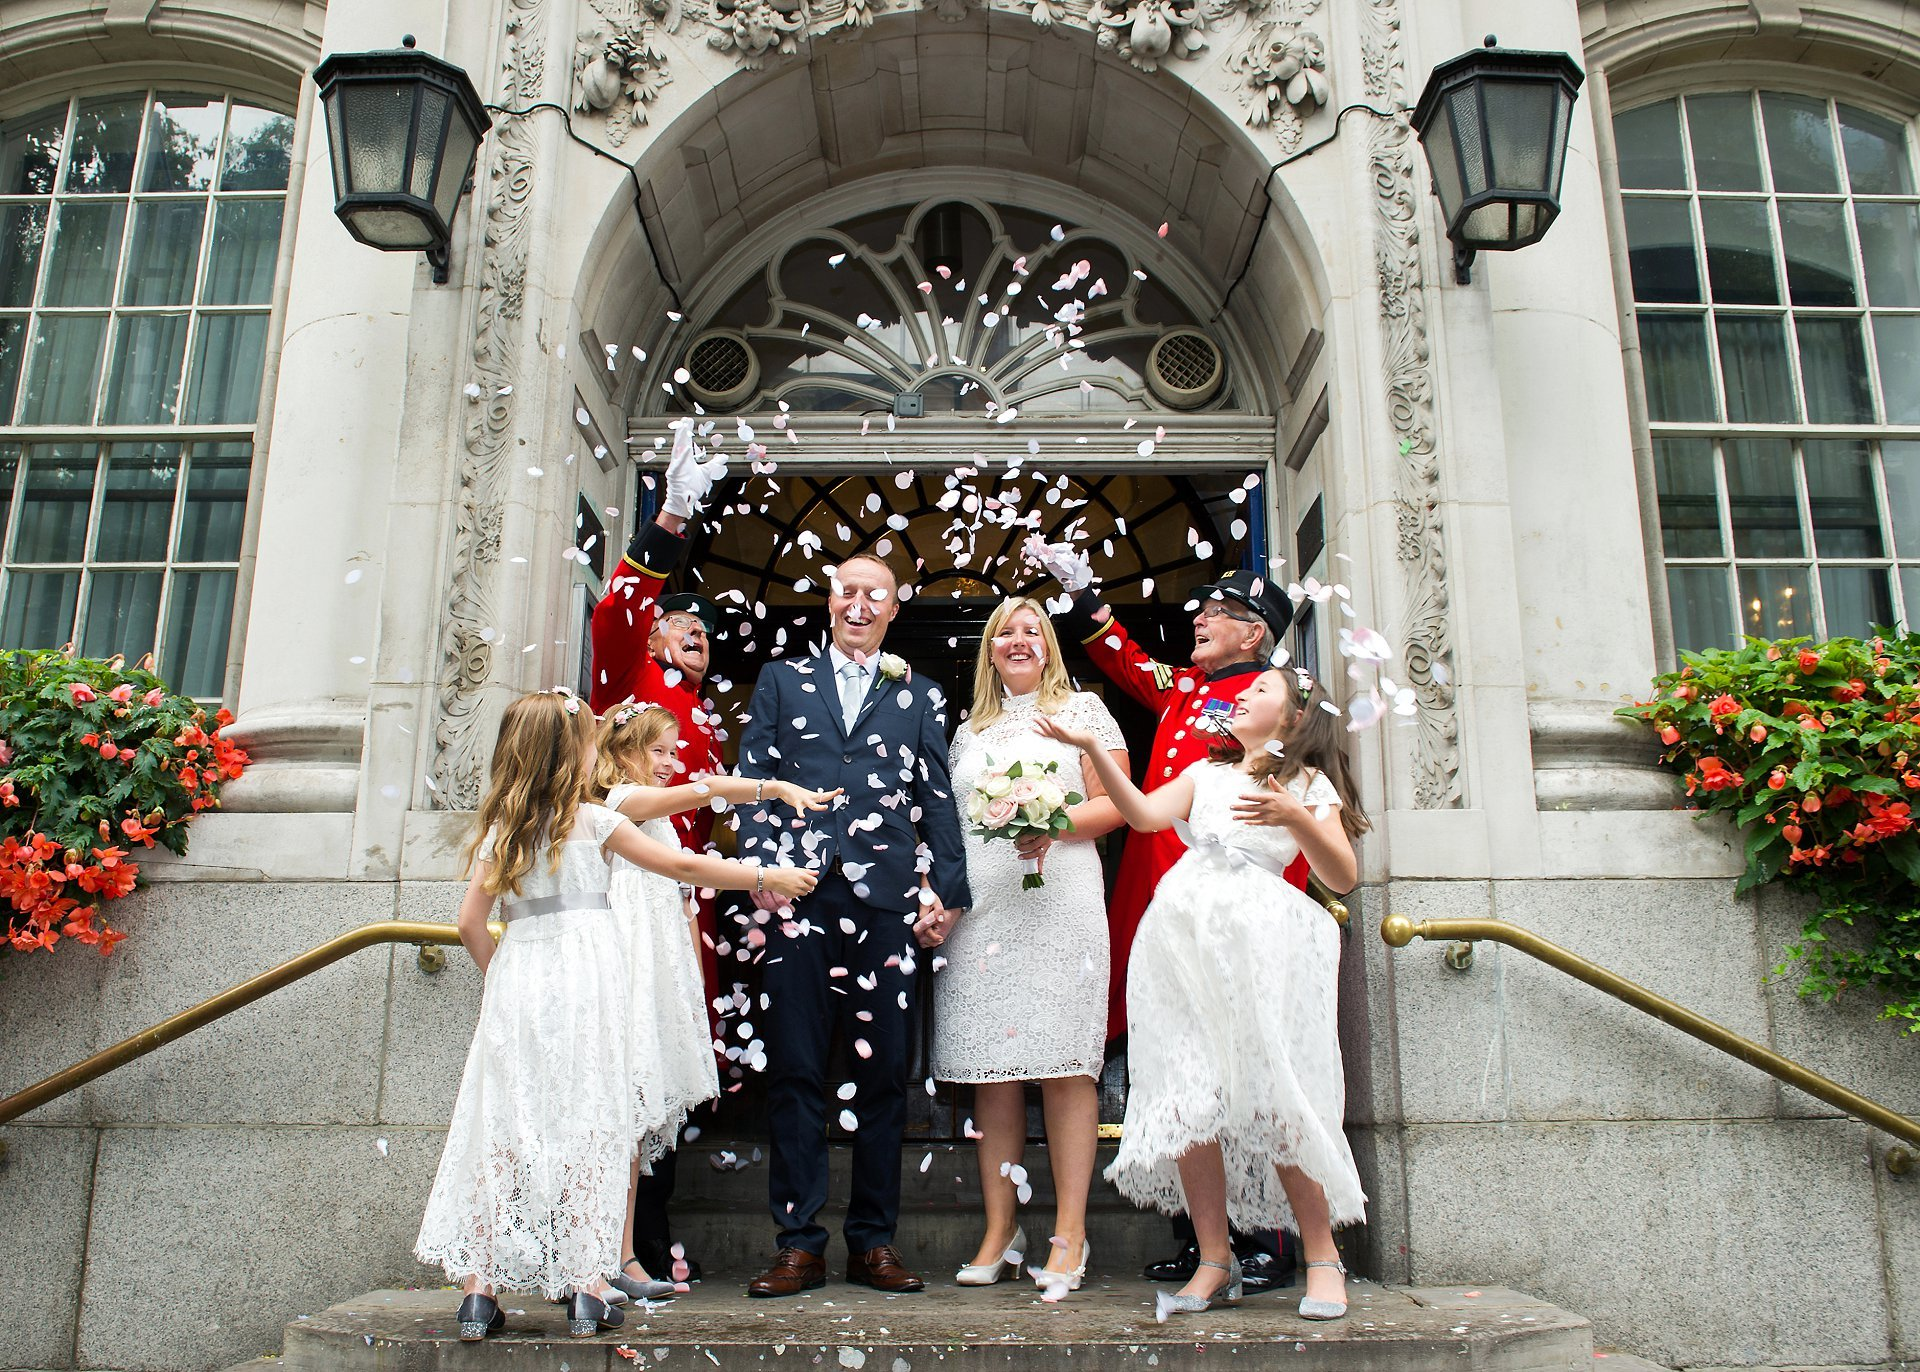 Chelsea Old Town Hall wedding photography for a couple and their three flower girl daughters and two Chelsea Pensioners as witnesses on the famous Chelsea Registry Office steps with confetti